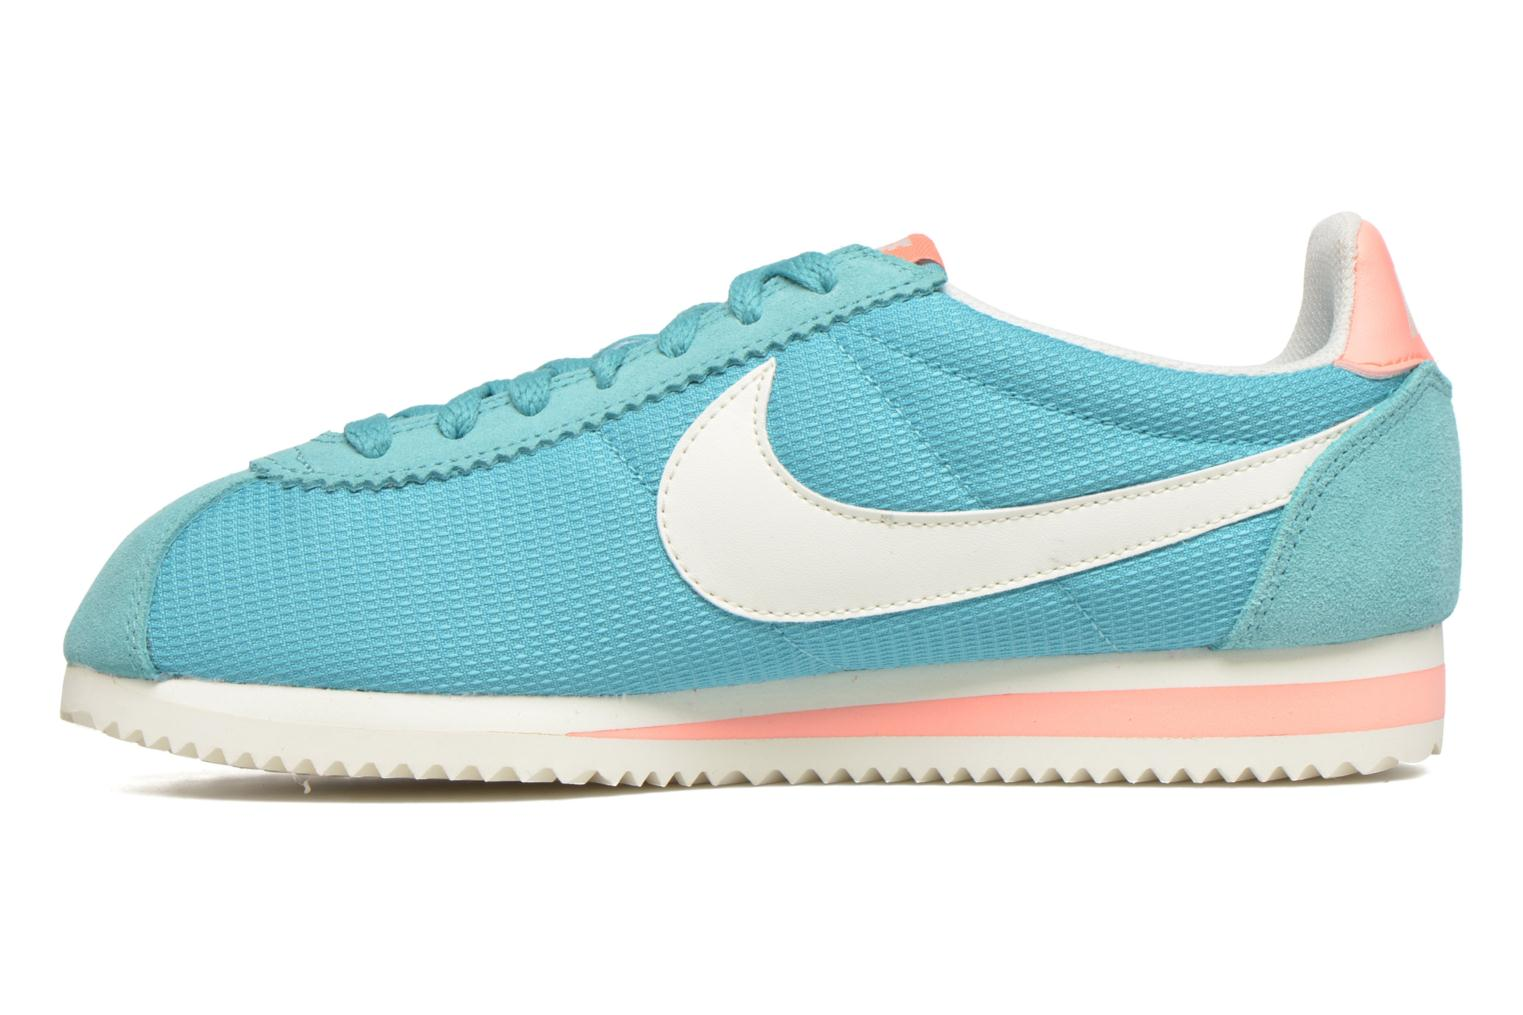 Wmns Classic Cortez Txt Washed Teal/Sail-Atmc Pink-Sl